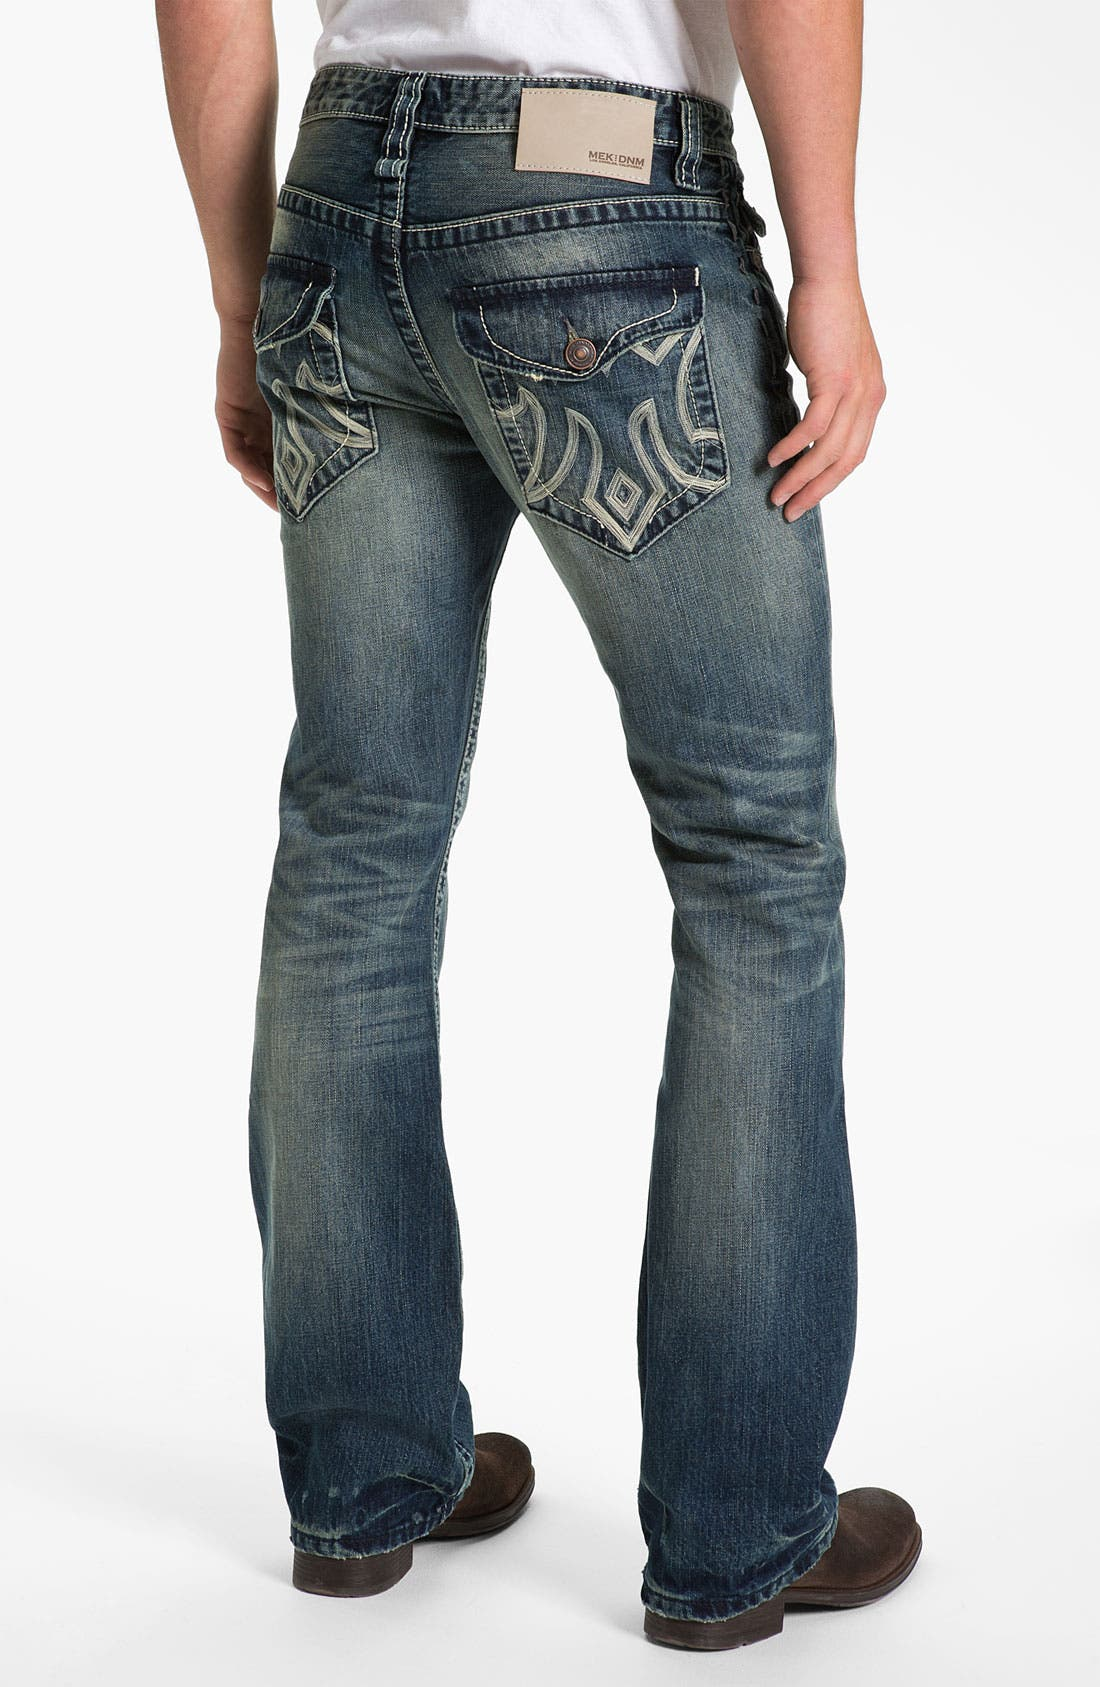 Alternate Image 1 Selected - MEK Denim 'Oaxaca' Slim Bootcut Jeans (Medium Blue)